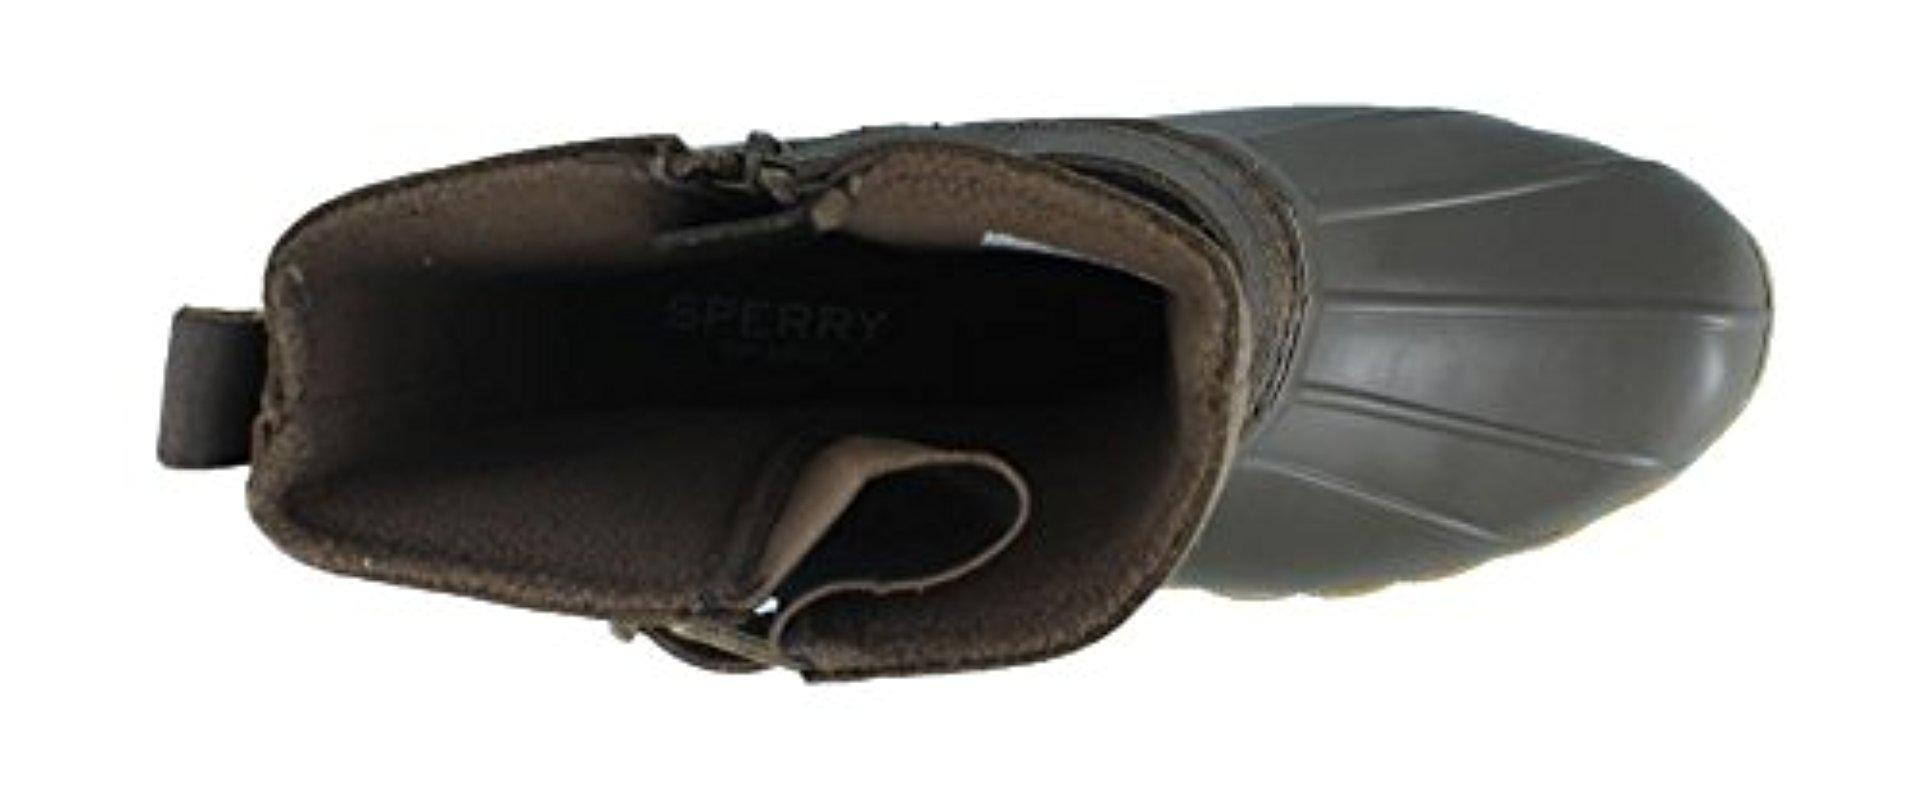 ca0352346a Lyst - Sperry Top-Sider Saltwater Acadia Rain Boot